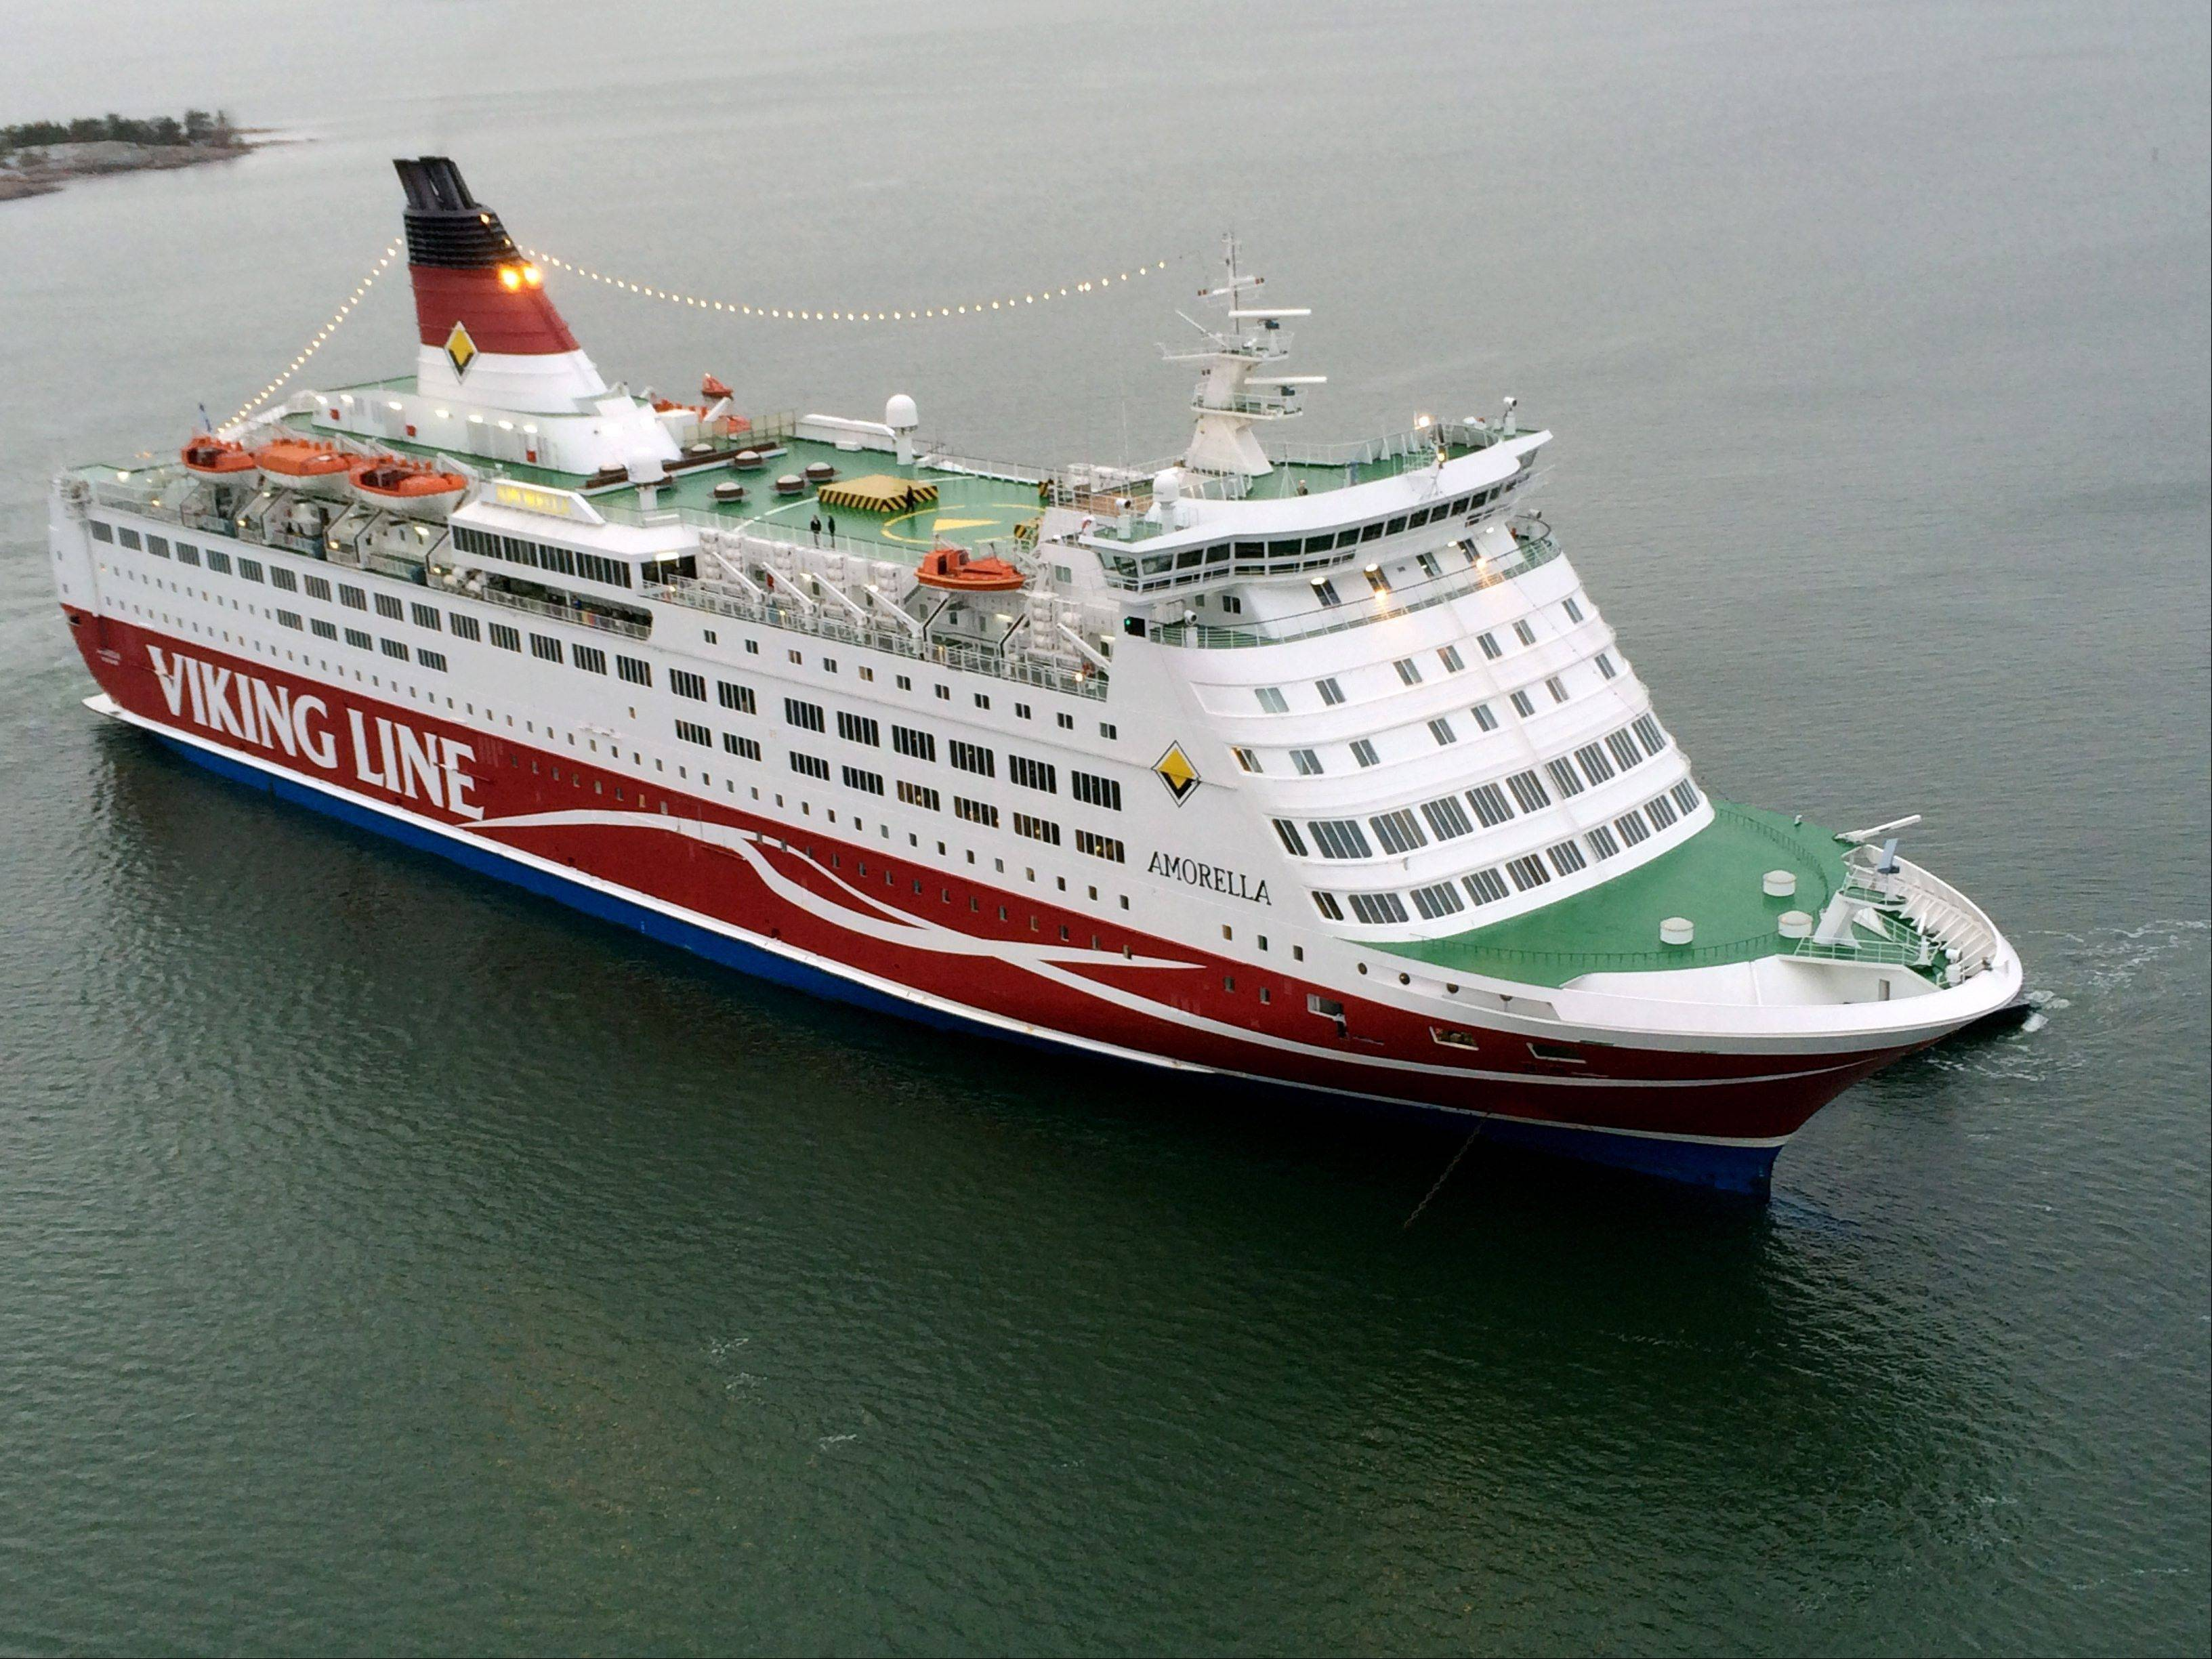 The Viking Line ferry M/S Amorella aground Saturday outside Mariehamn, Finland.